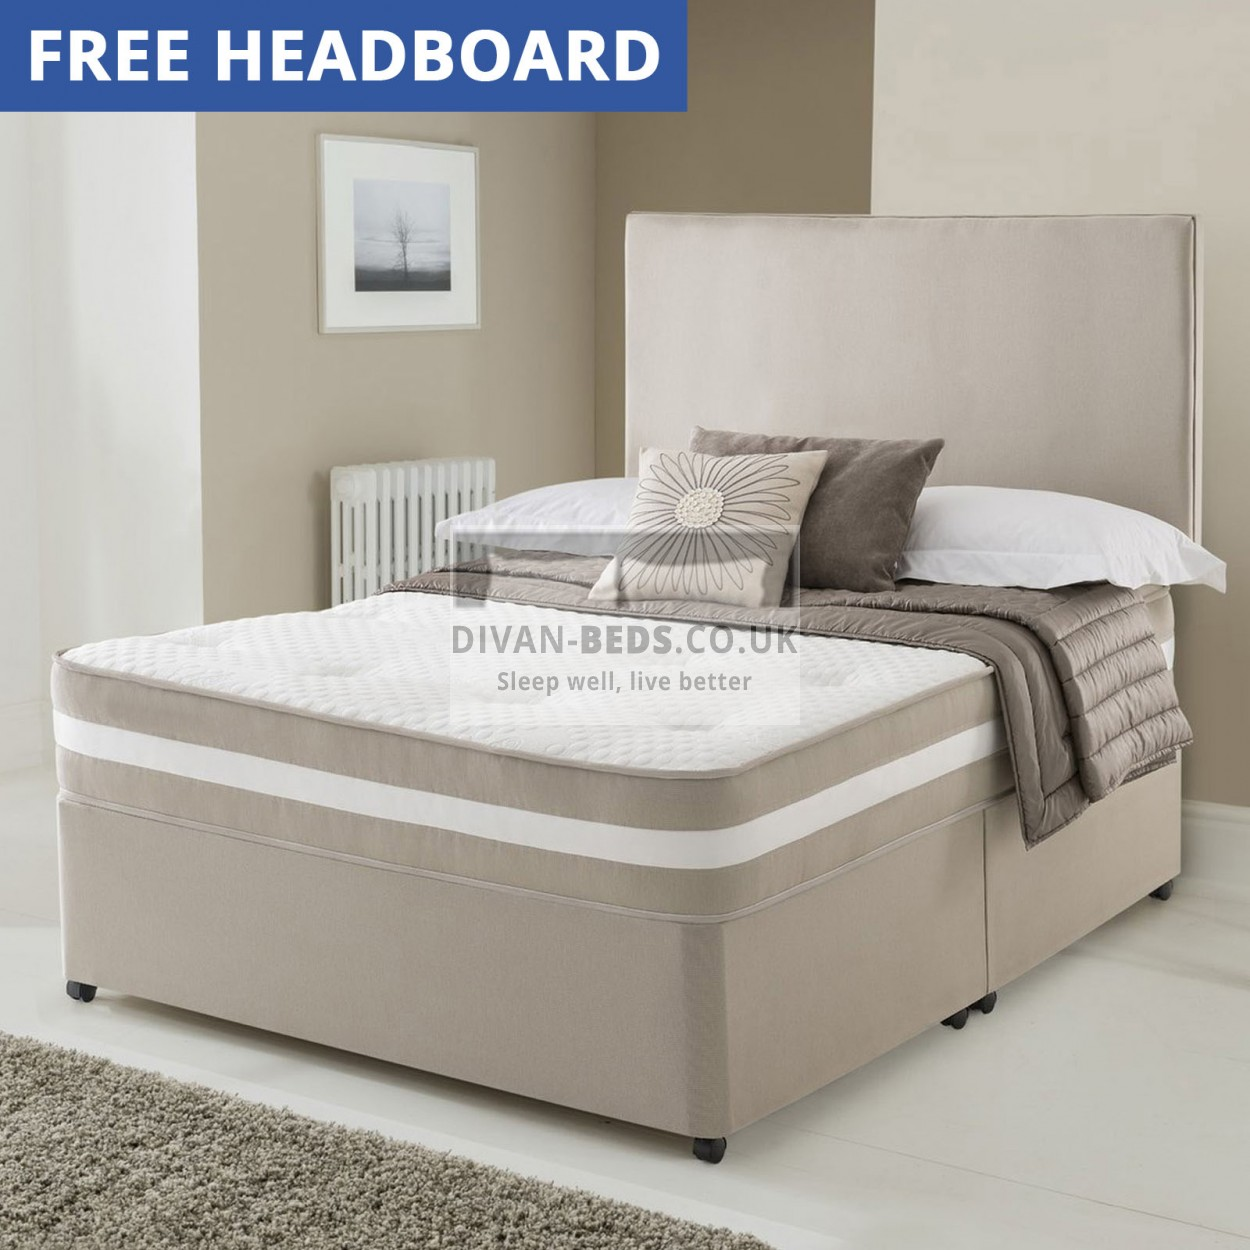 Clyde Divan Bed With Quilted Spring Memory Foam Mattress With Airflow Guaranteed Cheapest